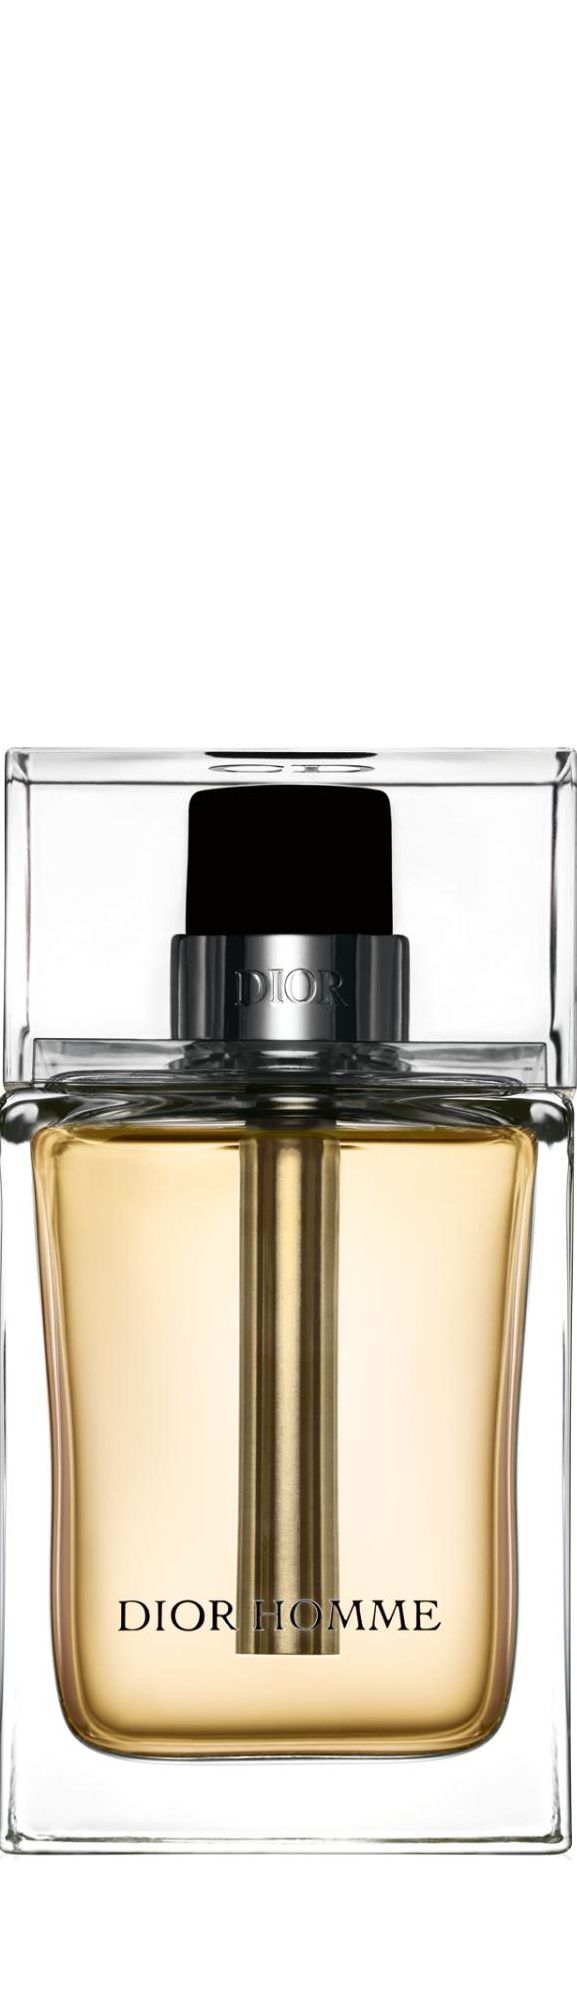 Dior Homme Eau de Toilette Spray 100ml